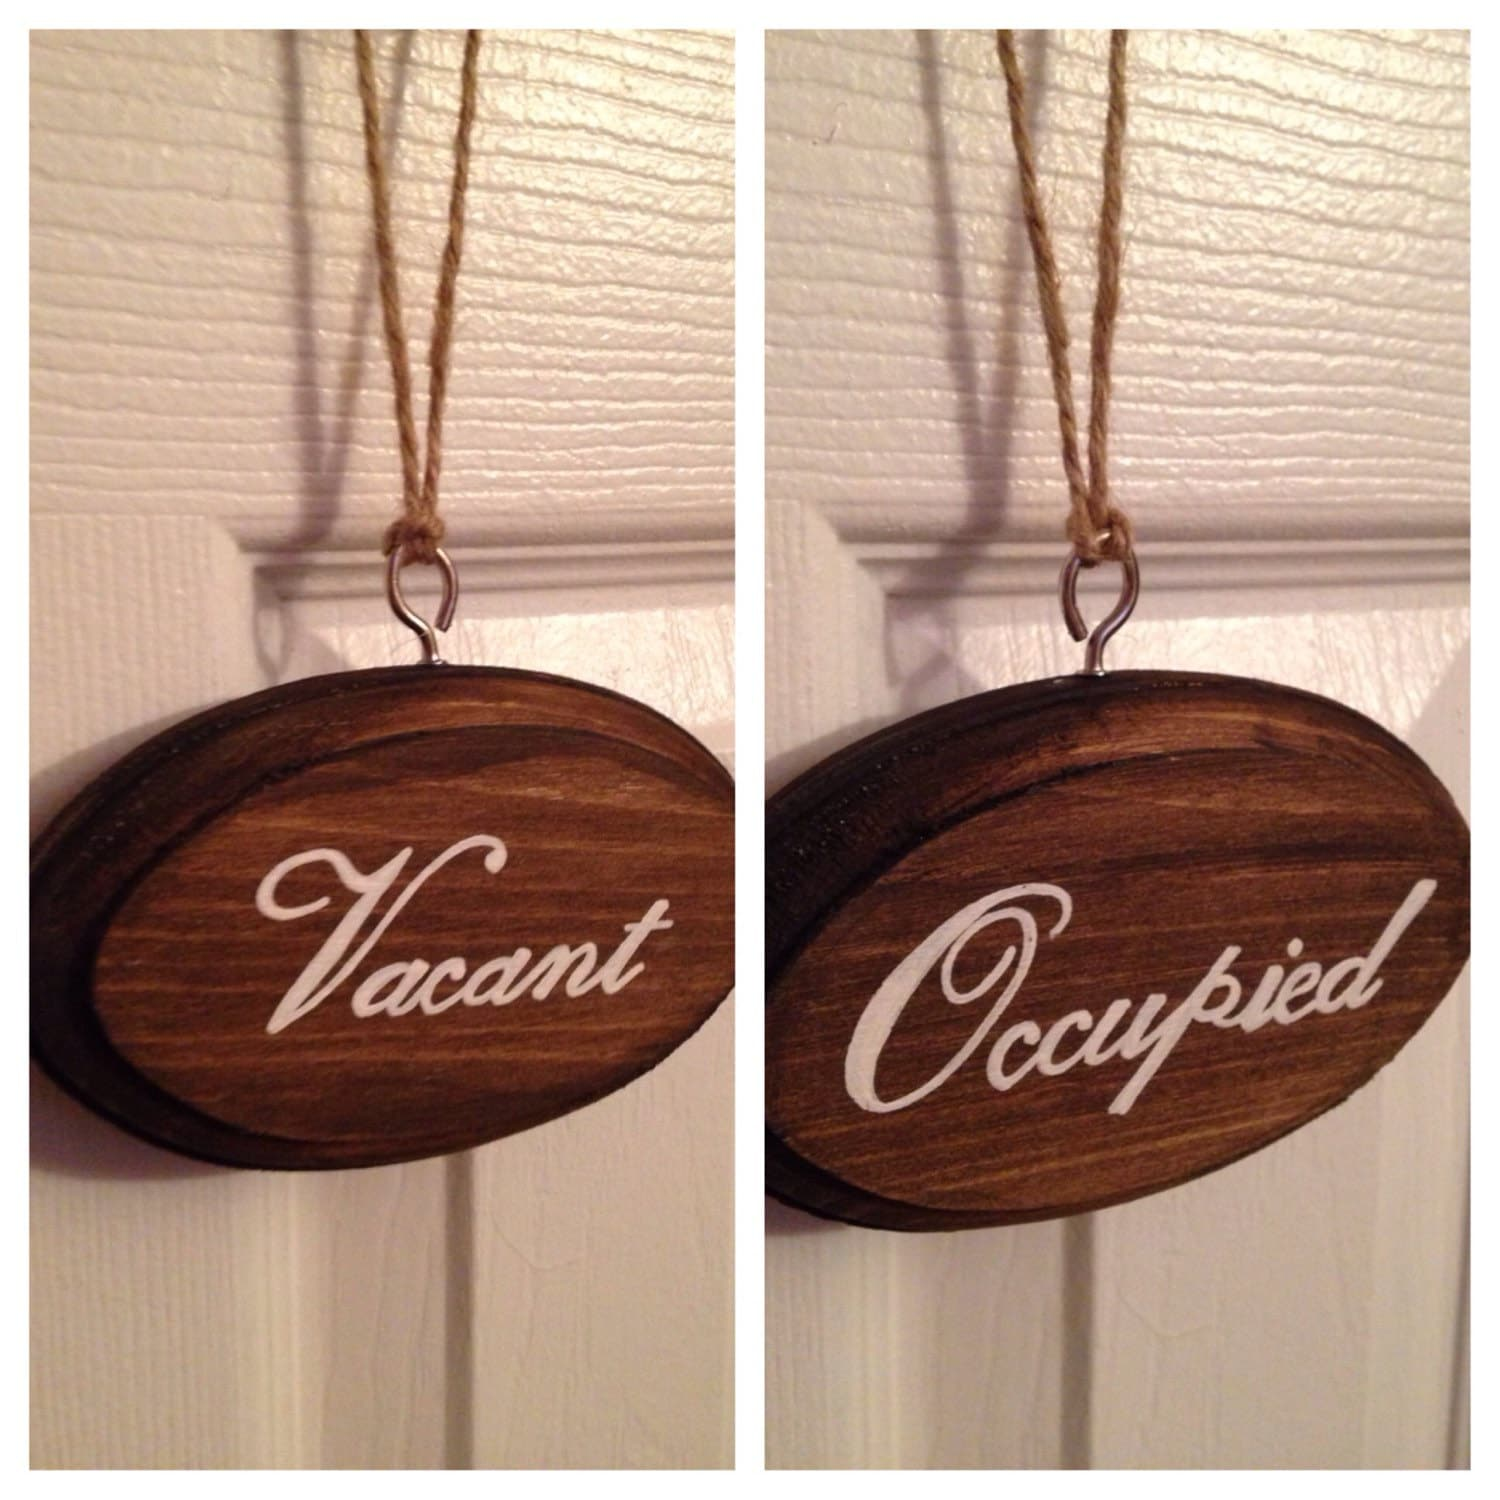 Vacant occupied double sided bathroom sign dark stain w white for Bathroom occupied sign